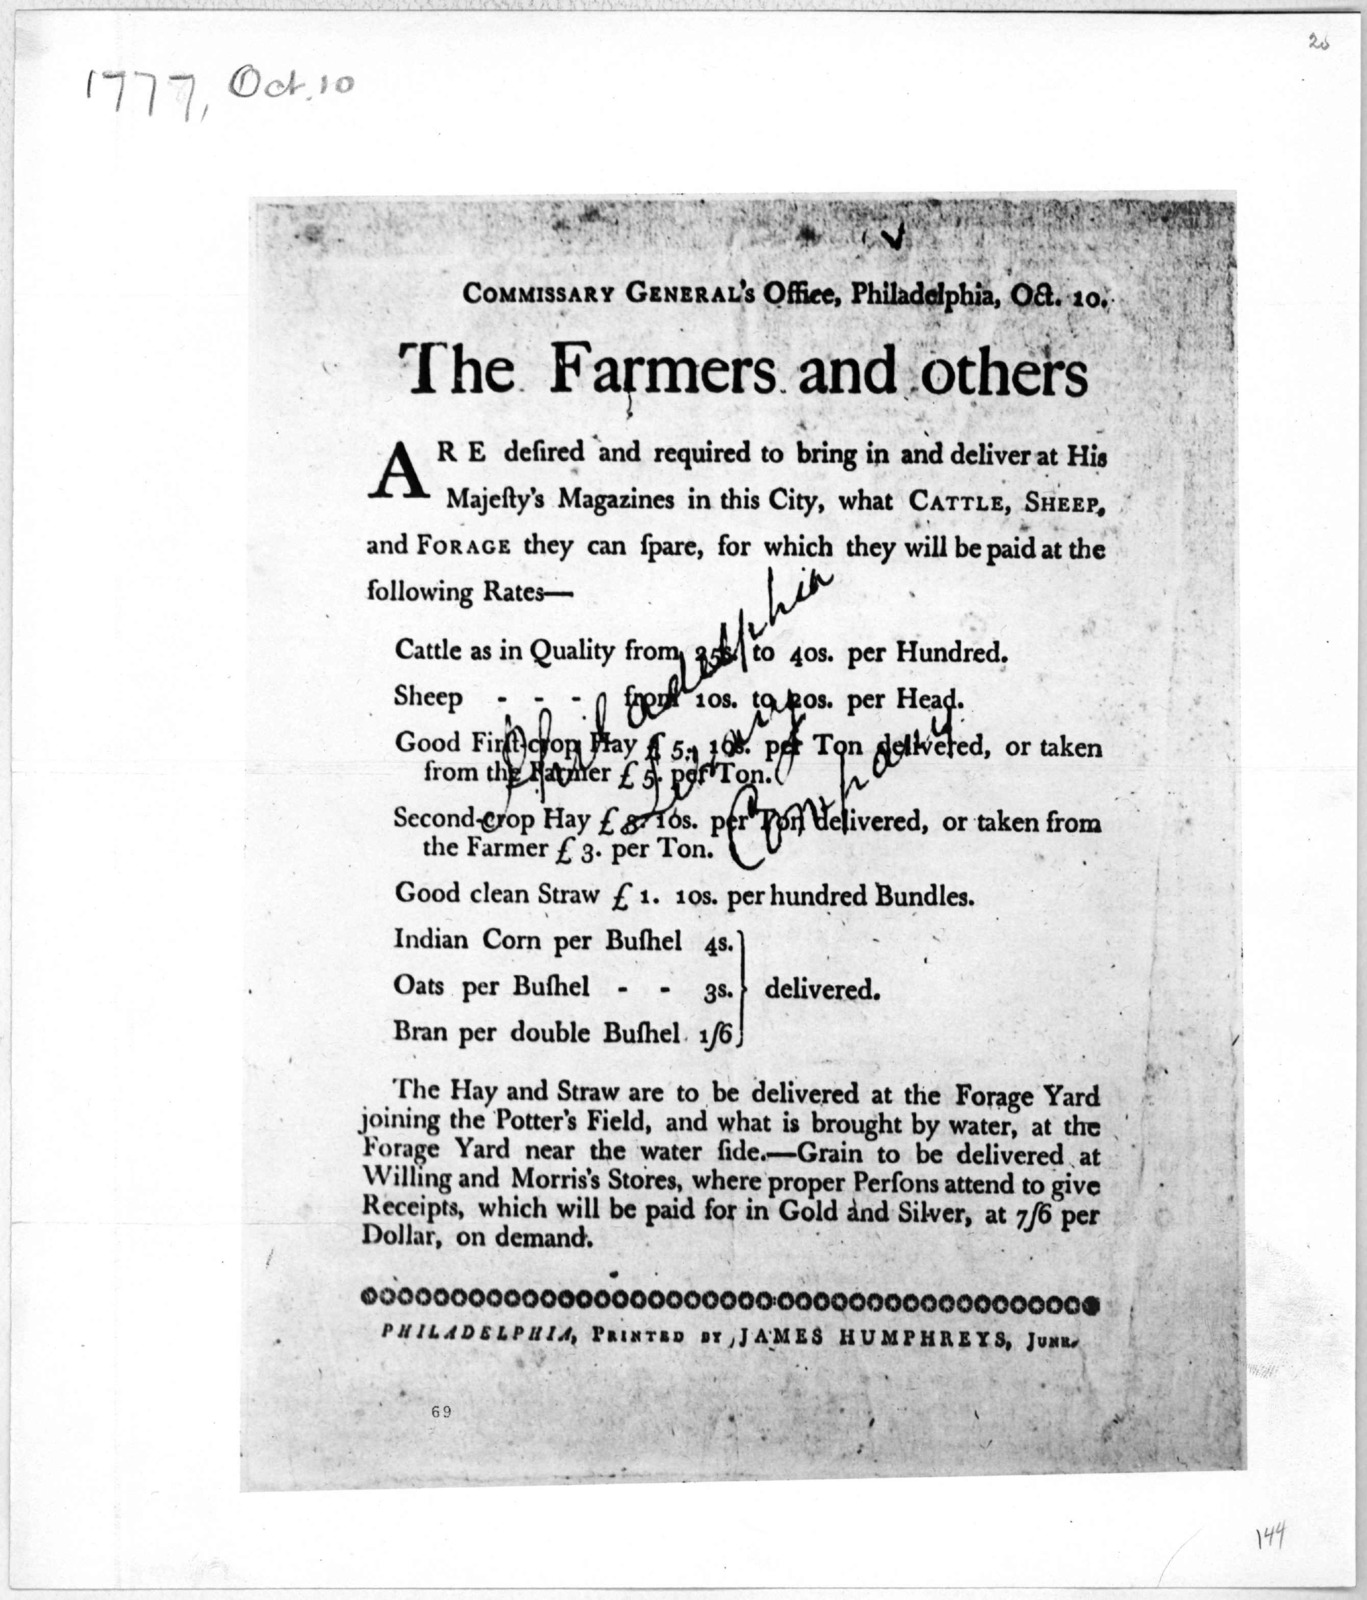 Commissary General's Office. Philadelphia. Oct. 10. The farmers and others are desired and required to bring in and deliver at His Majesty's magazines in this City, what cattle, sheep, and forage they can spare, for which they will be paid at th